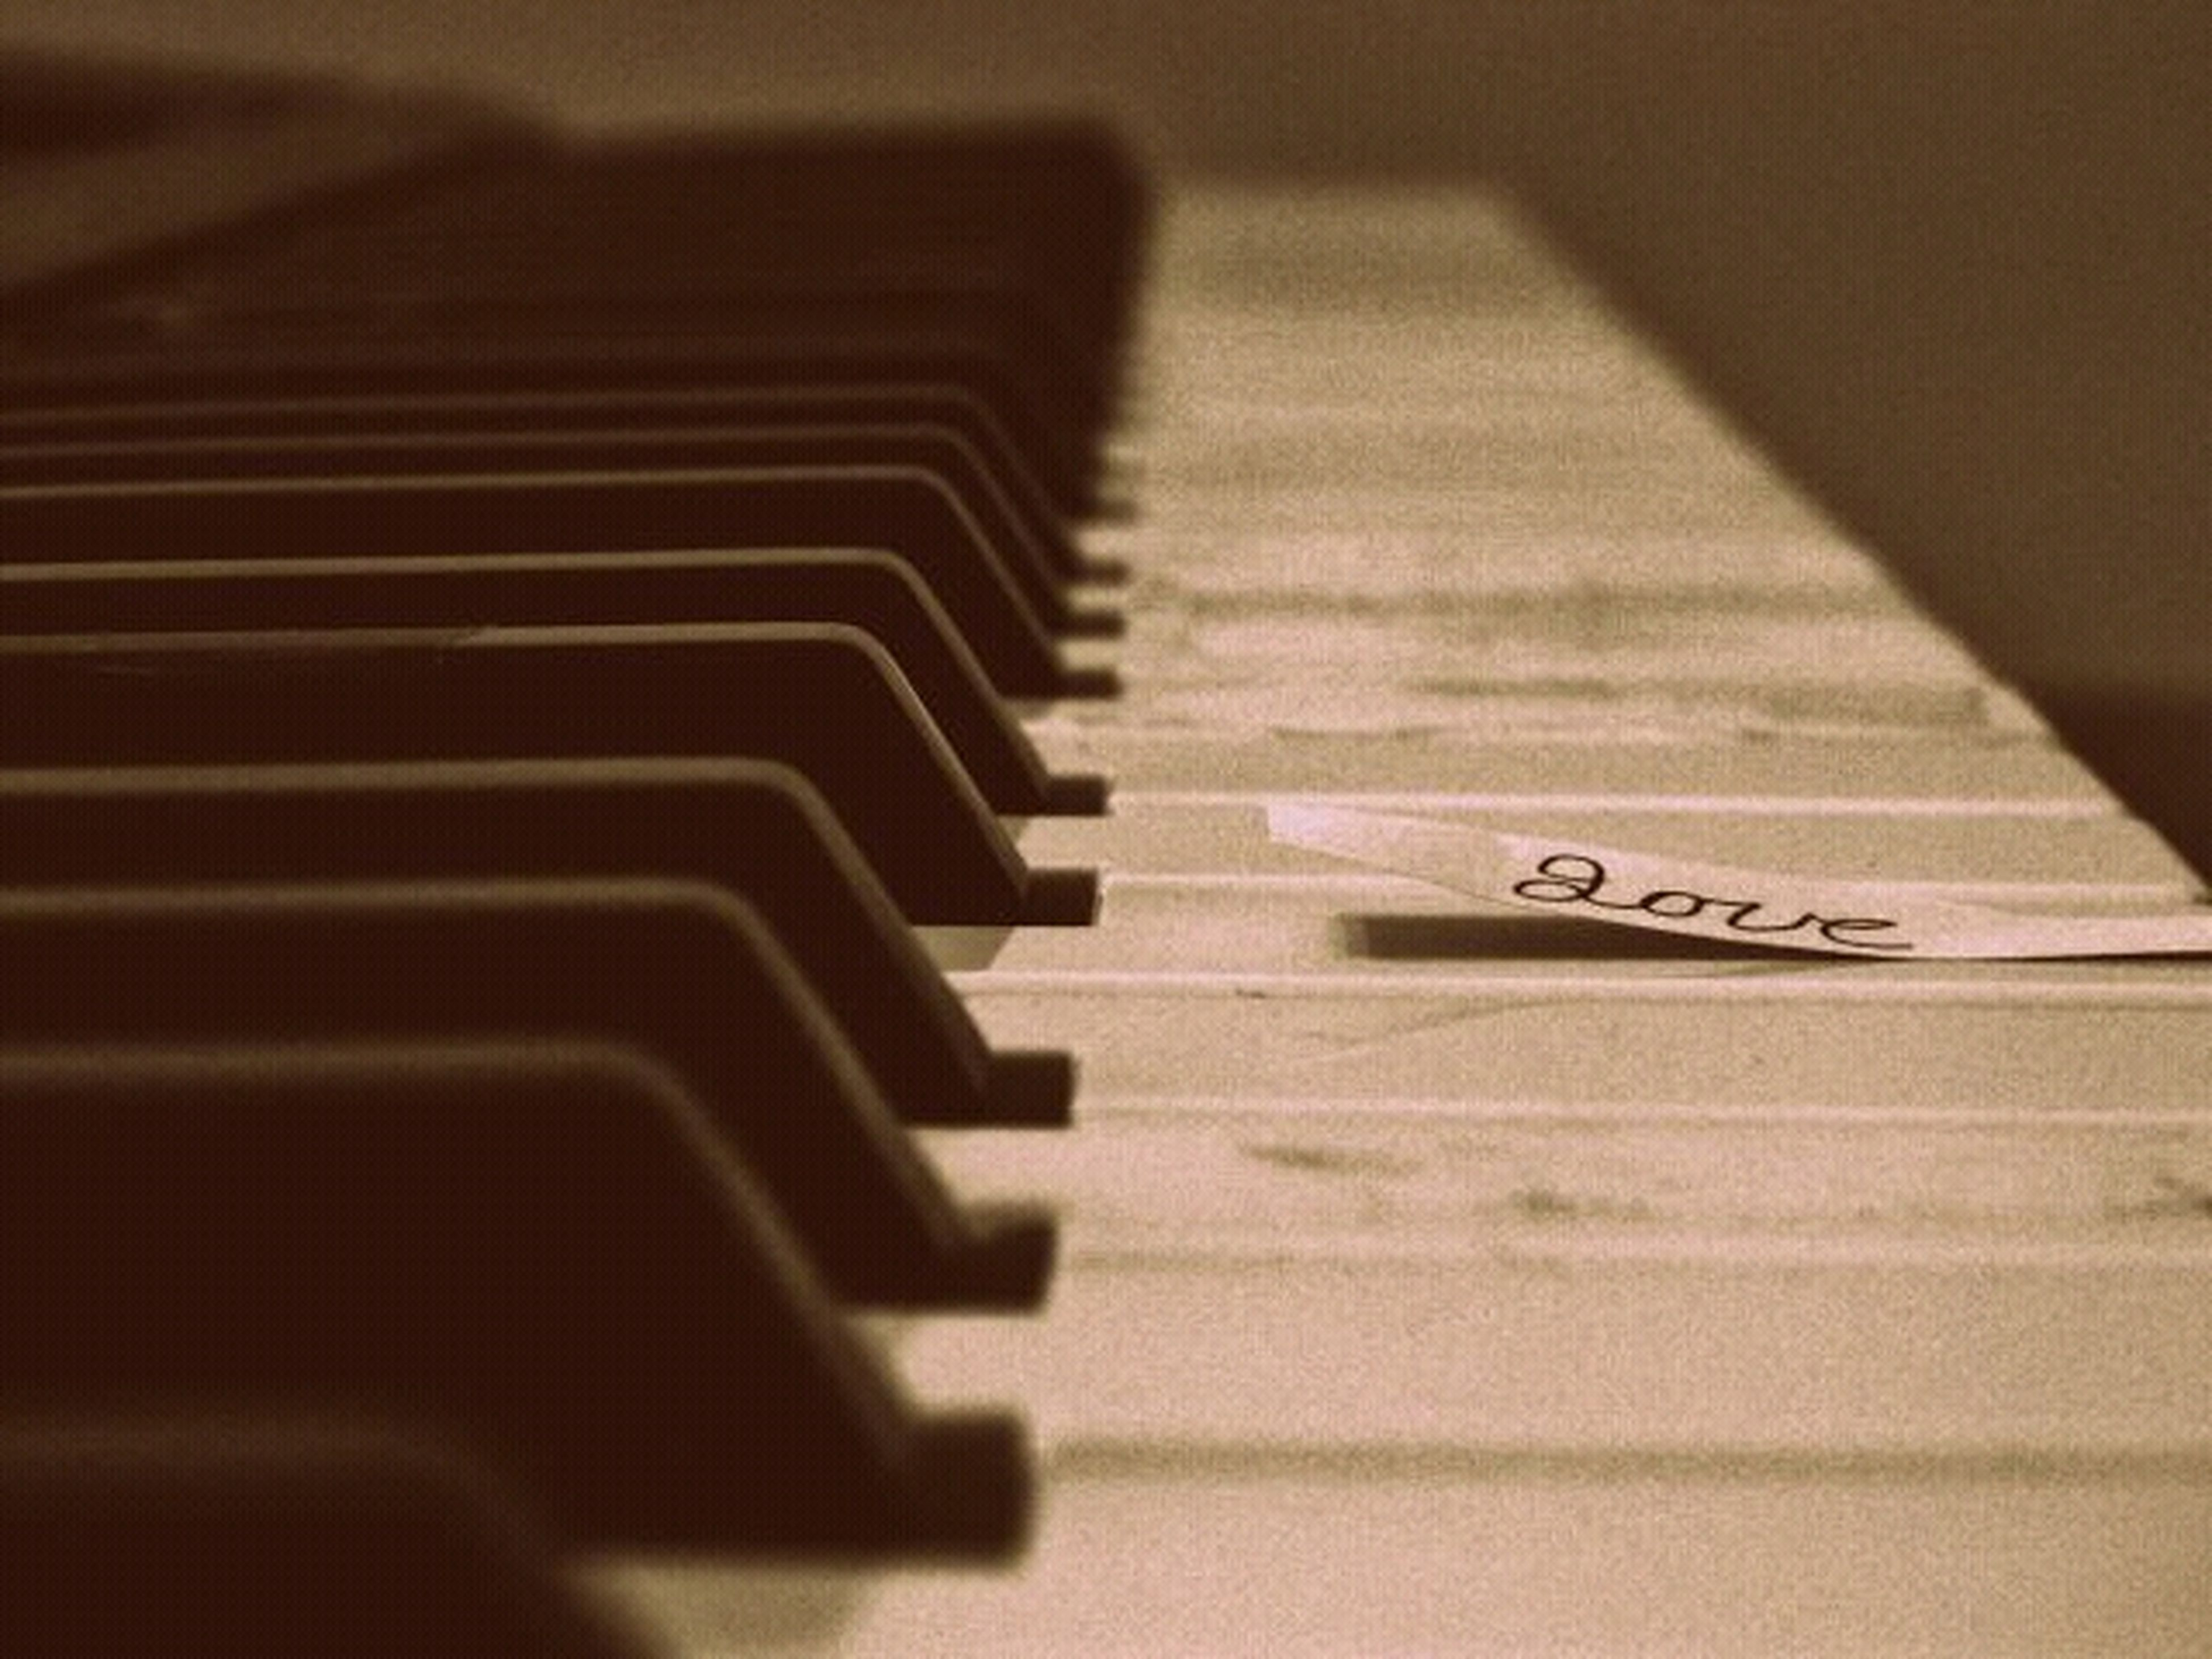 indoors, music, selective focus, piano key, close-up, musical instrument, arts culture and entertainment, piano, musical equipment, in a row, high angle view, still life, technology, no people, absence, surface level, table, empty, focus on foreground, repetition